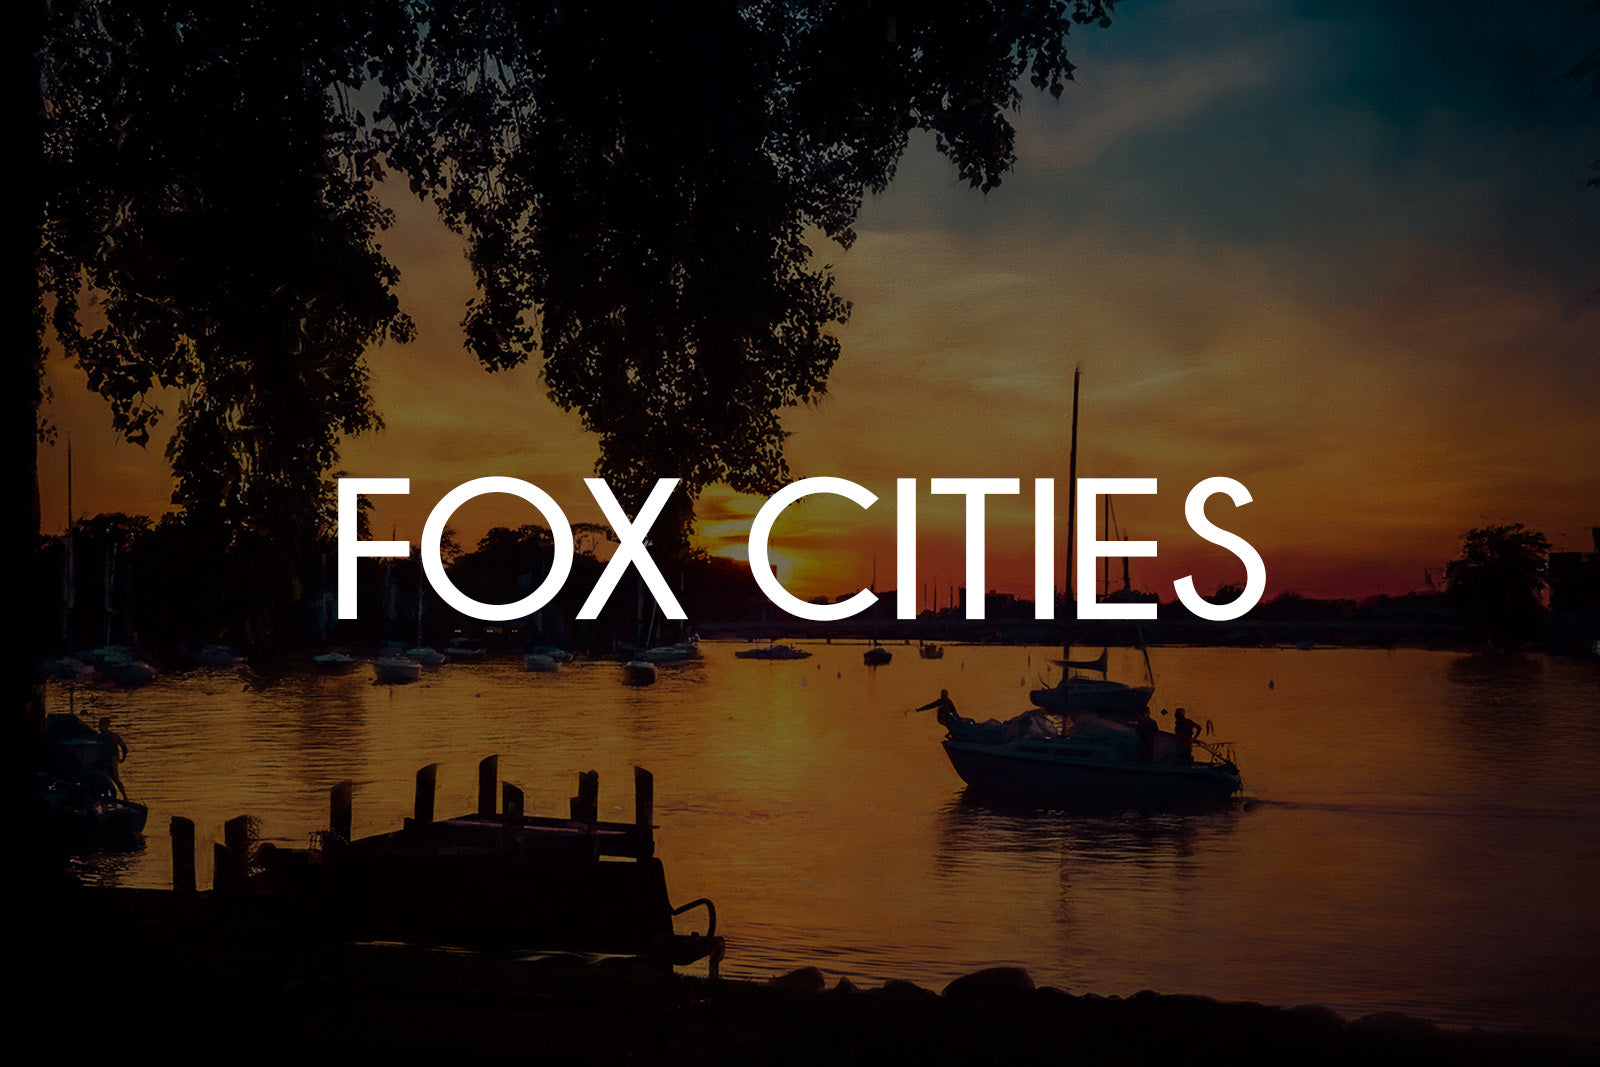 Fox Cities, Wisconsin